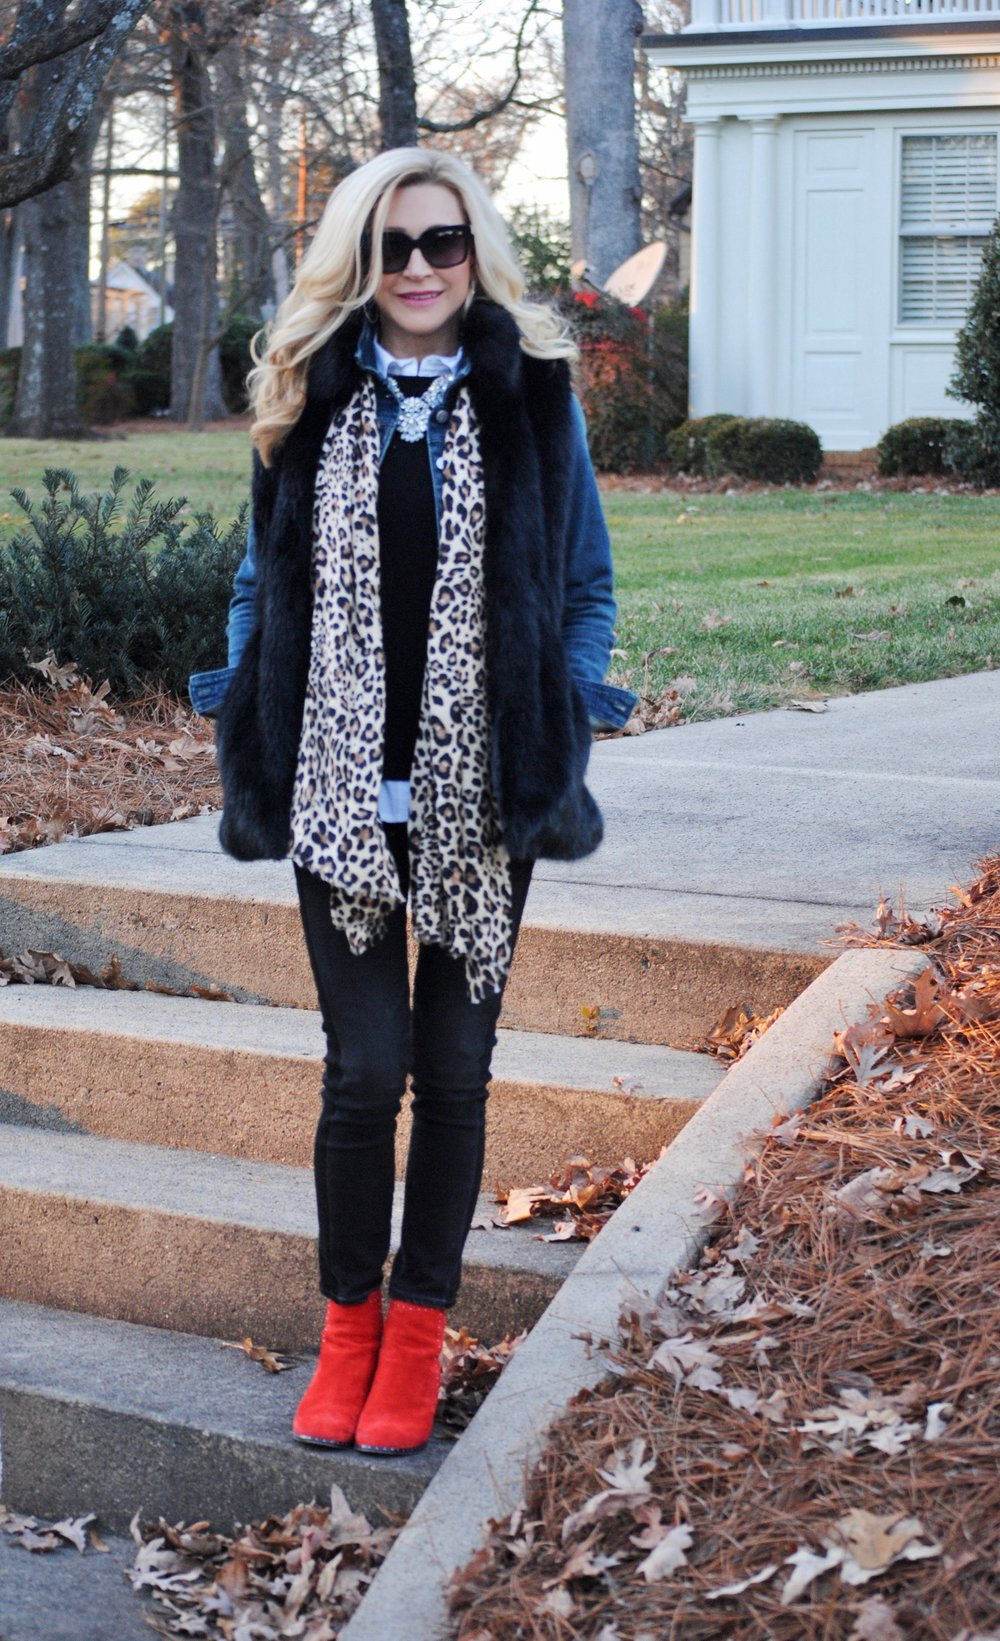 Layering for style and warmth